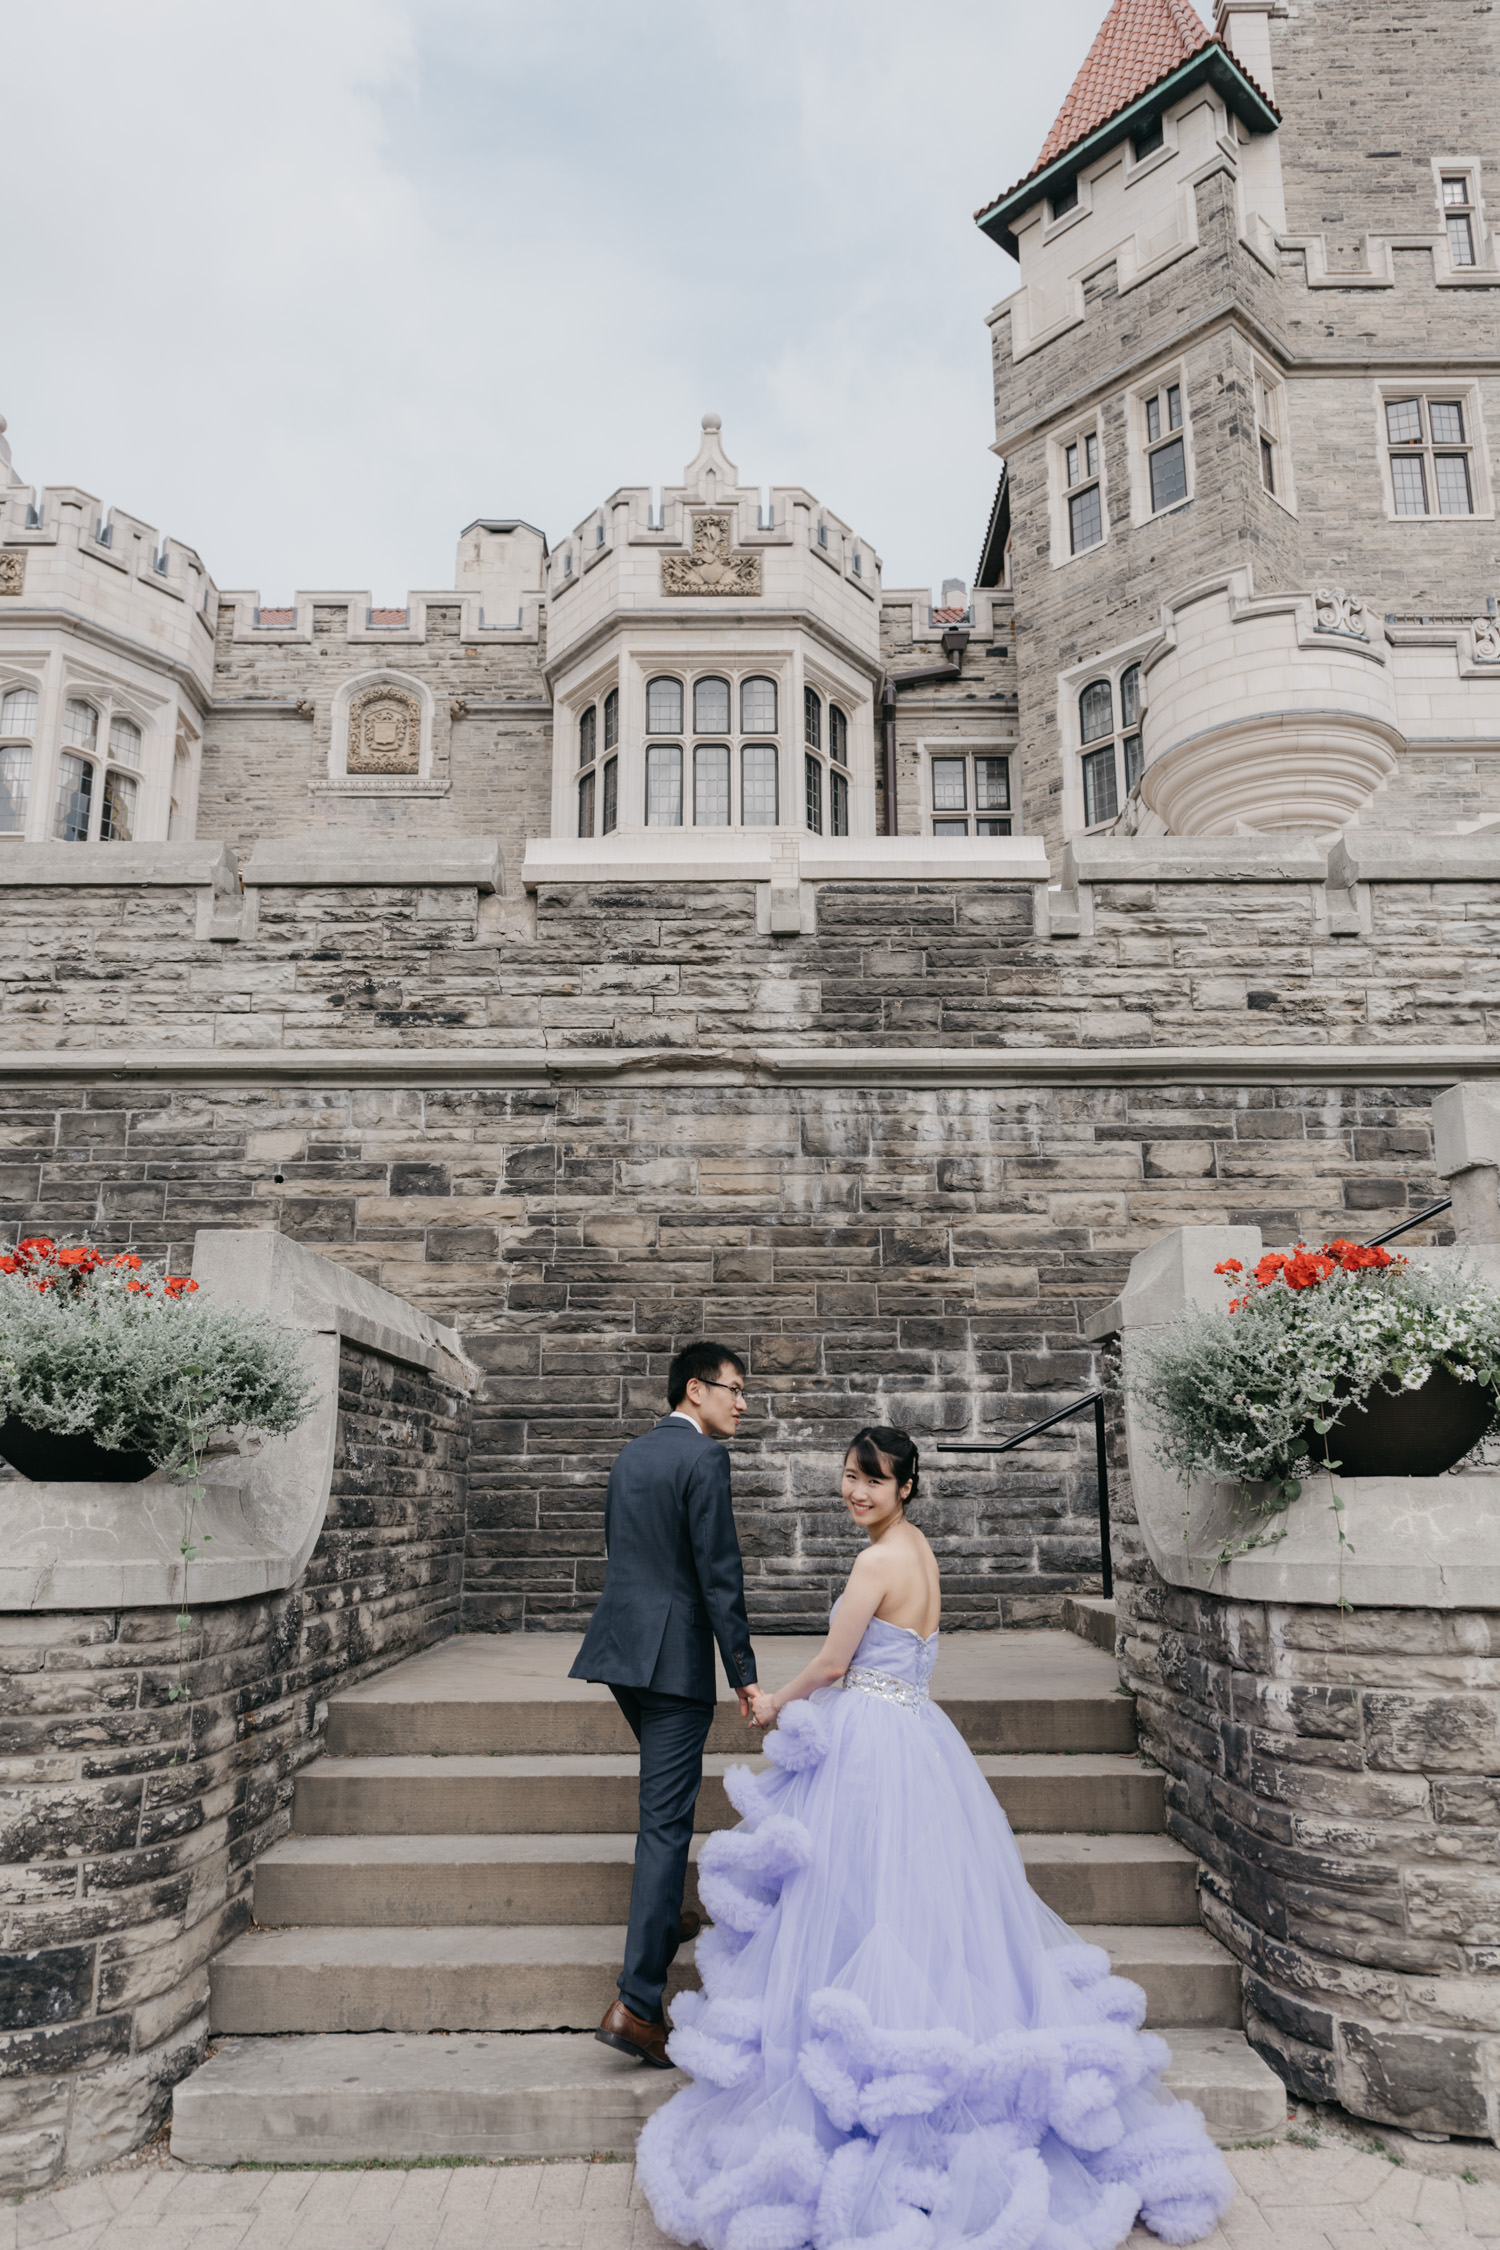 Grand Castle Fairytale Casa Loma Engagement And Wedding Photos